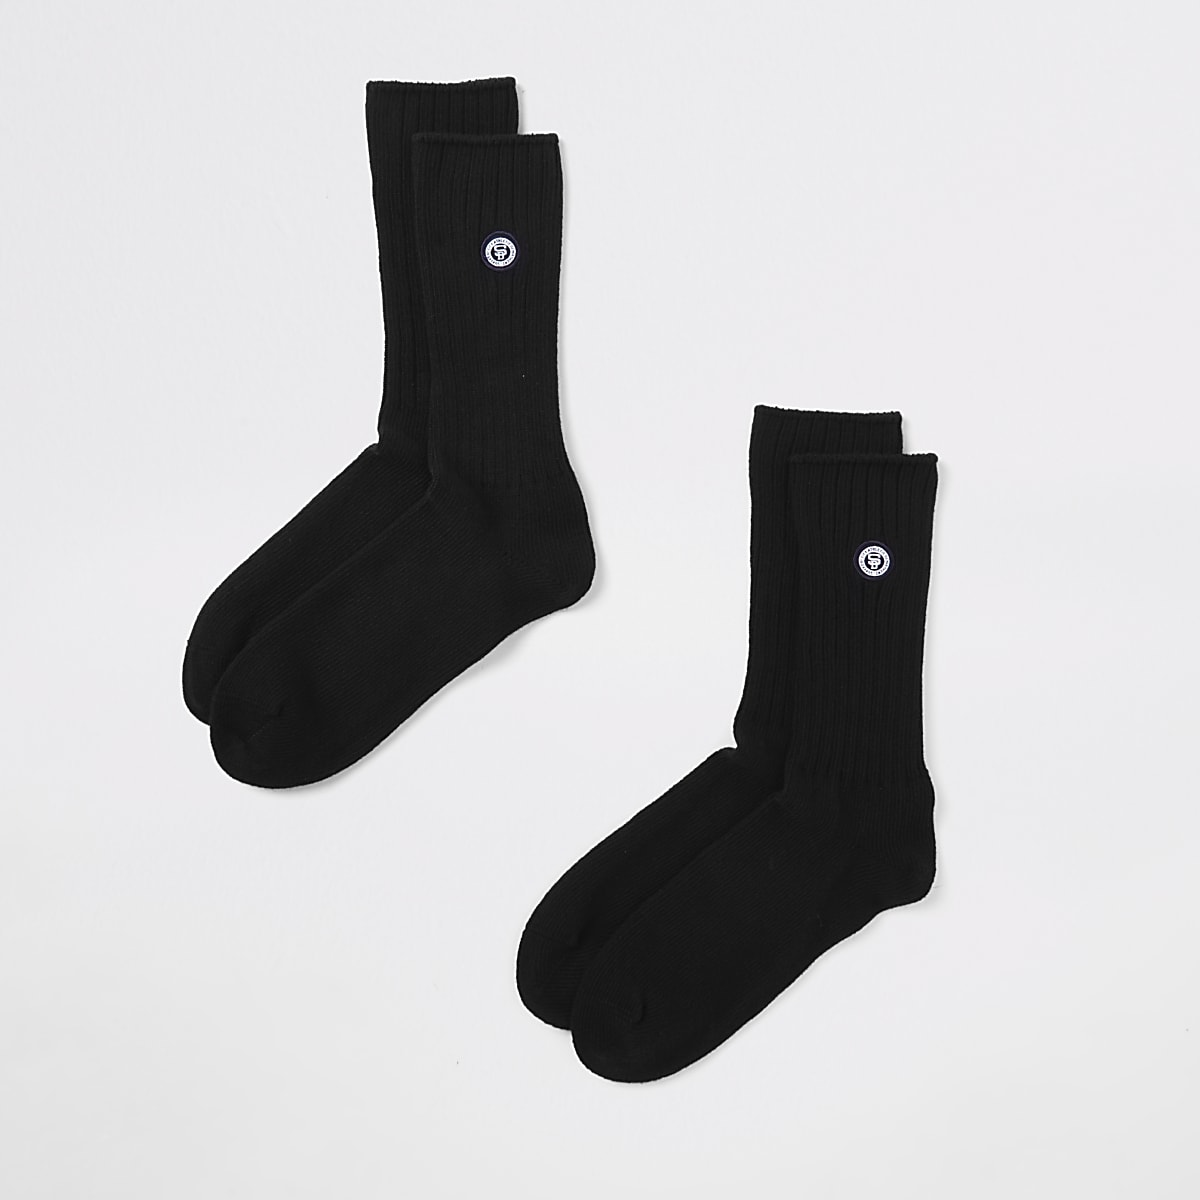 Superdry University black socks 2 pack